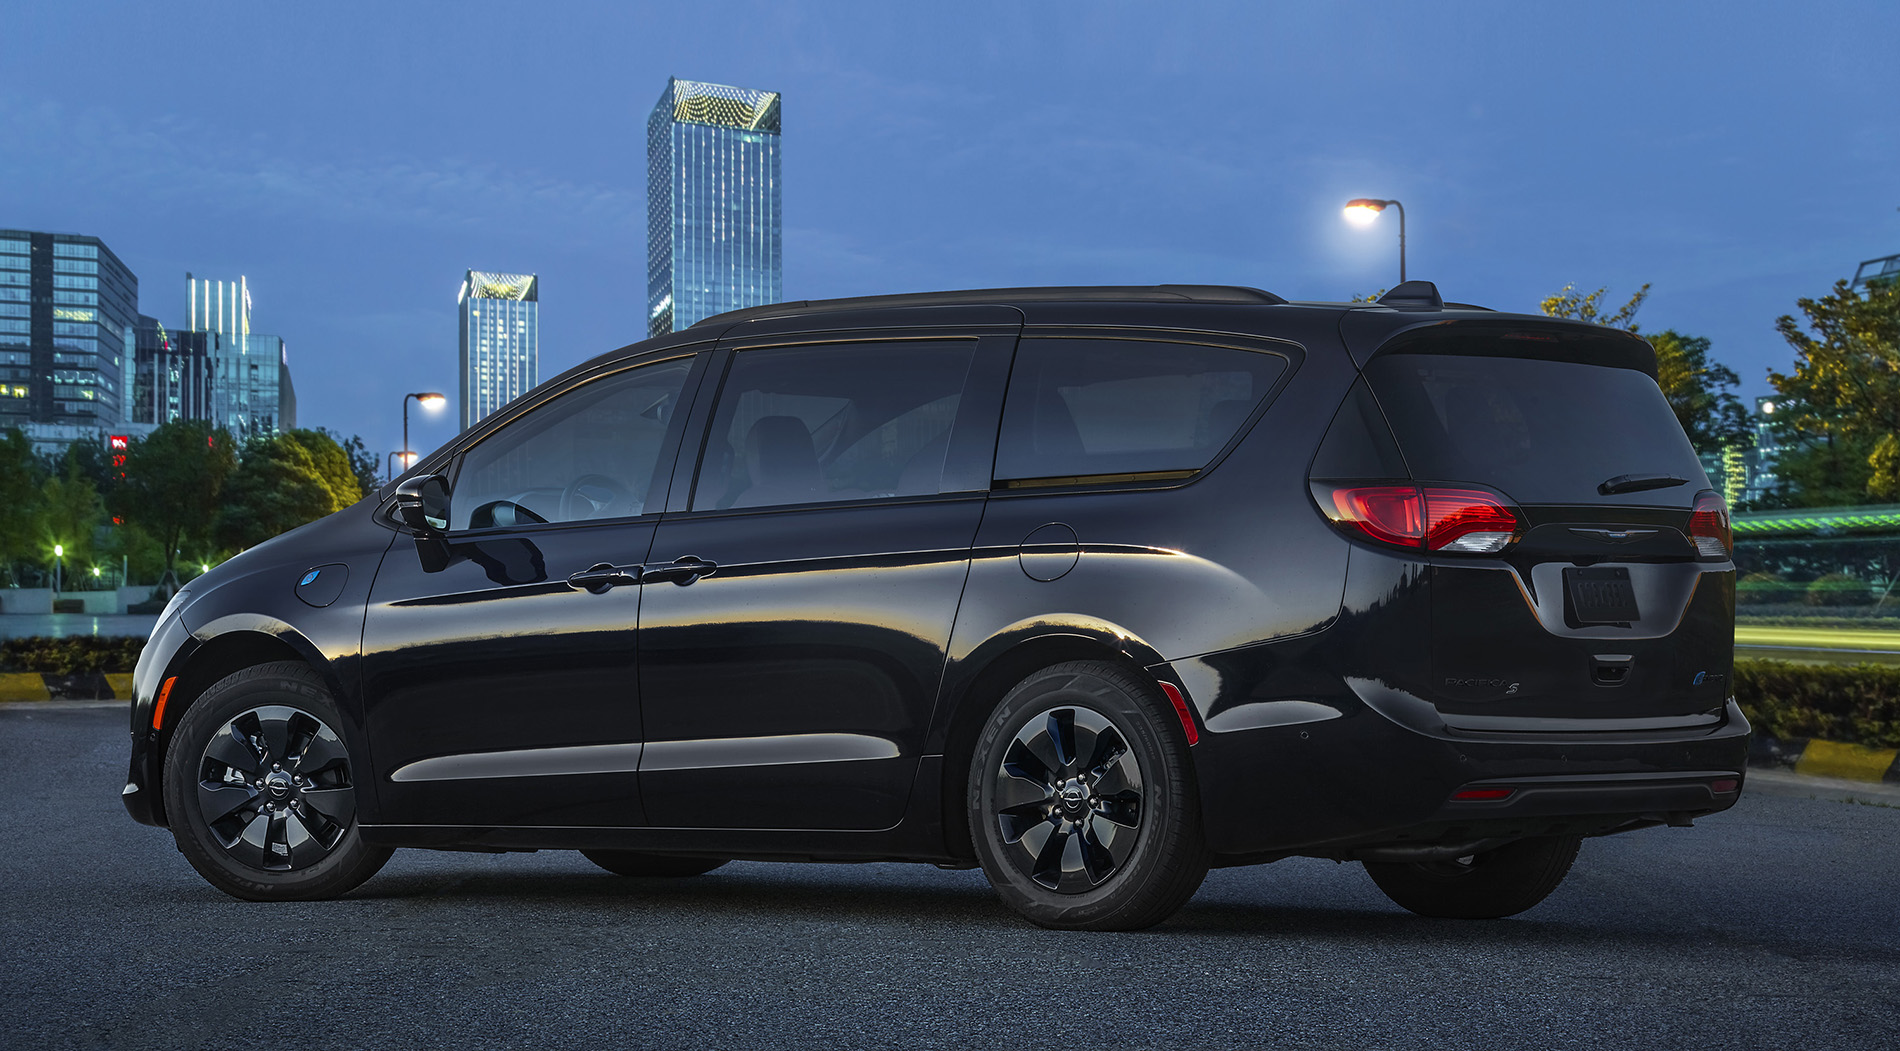 2020 Chrysler Pacifica Hybrid with S Appearance Package